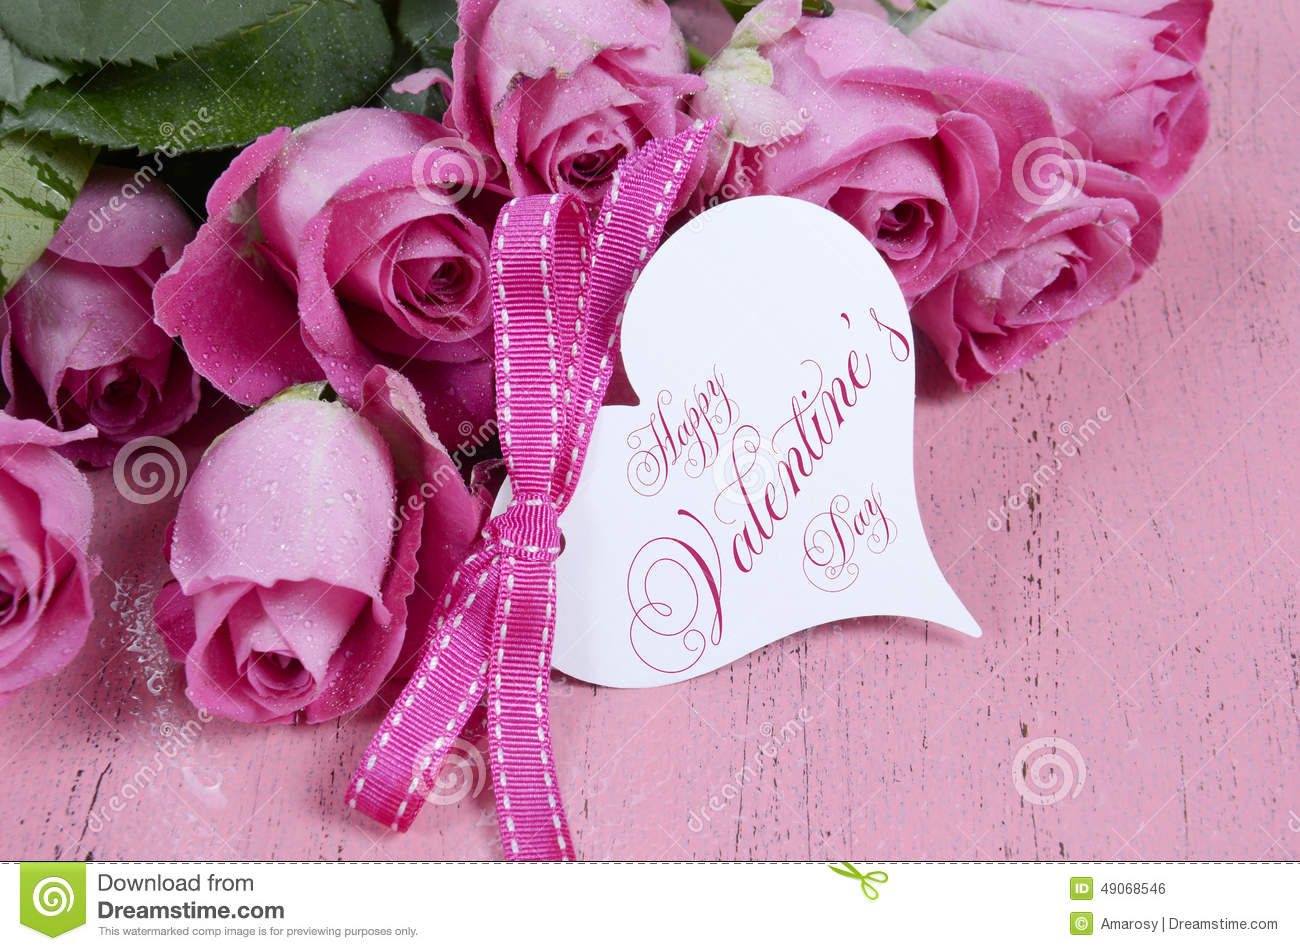 Pink Roses With Happy Valentines Day Heart Shape Gift Tag